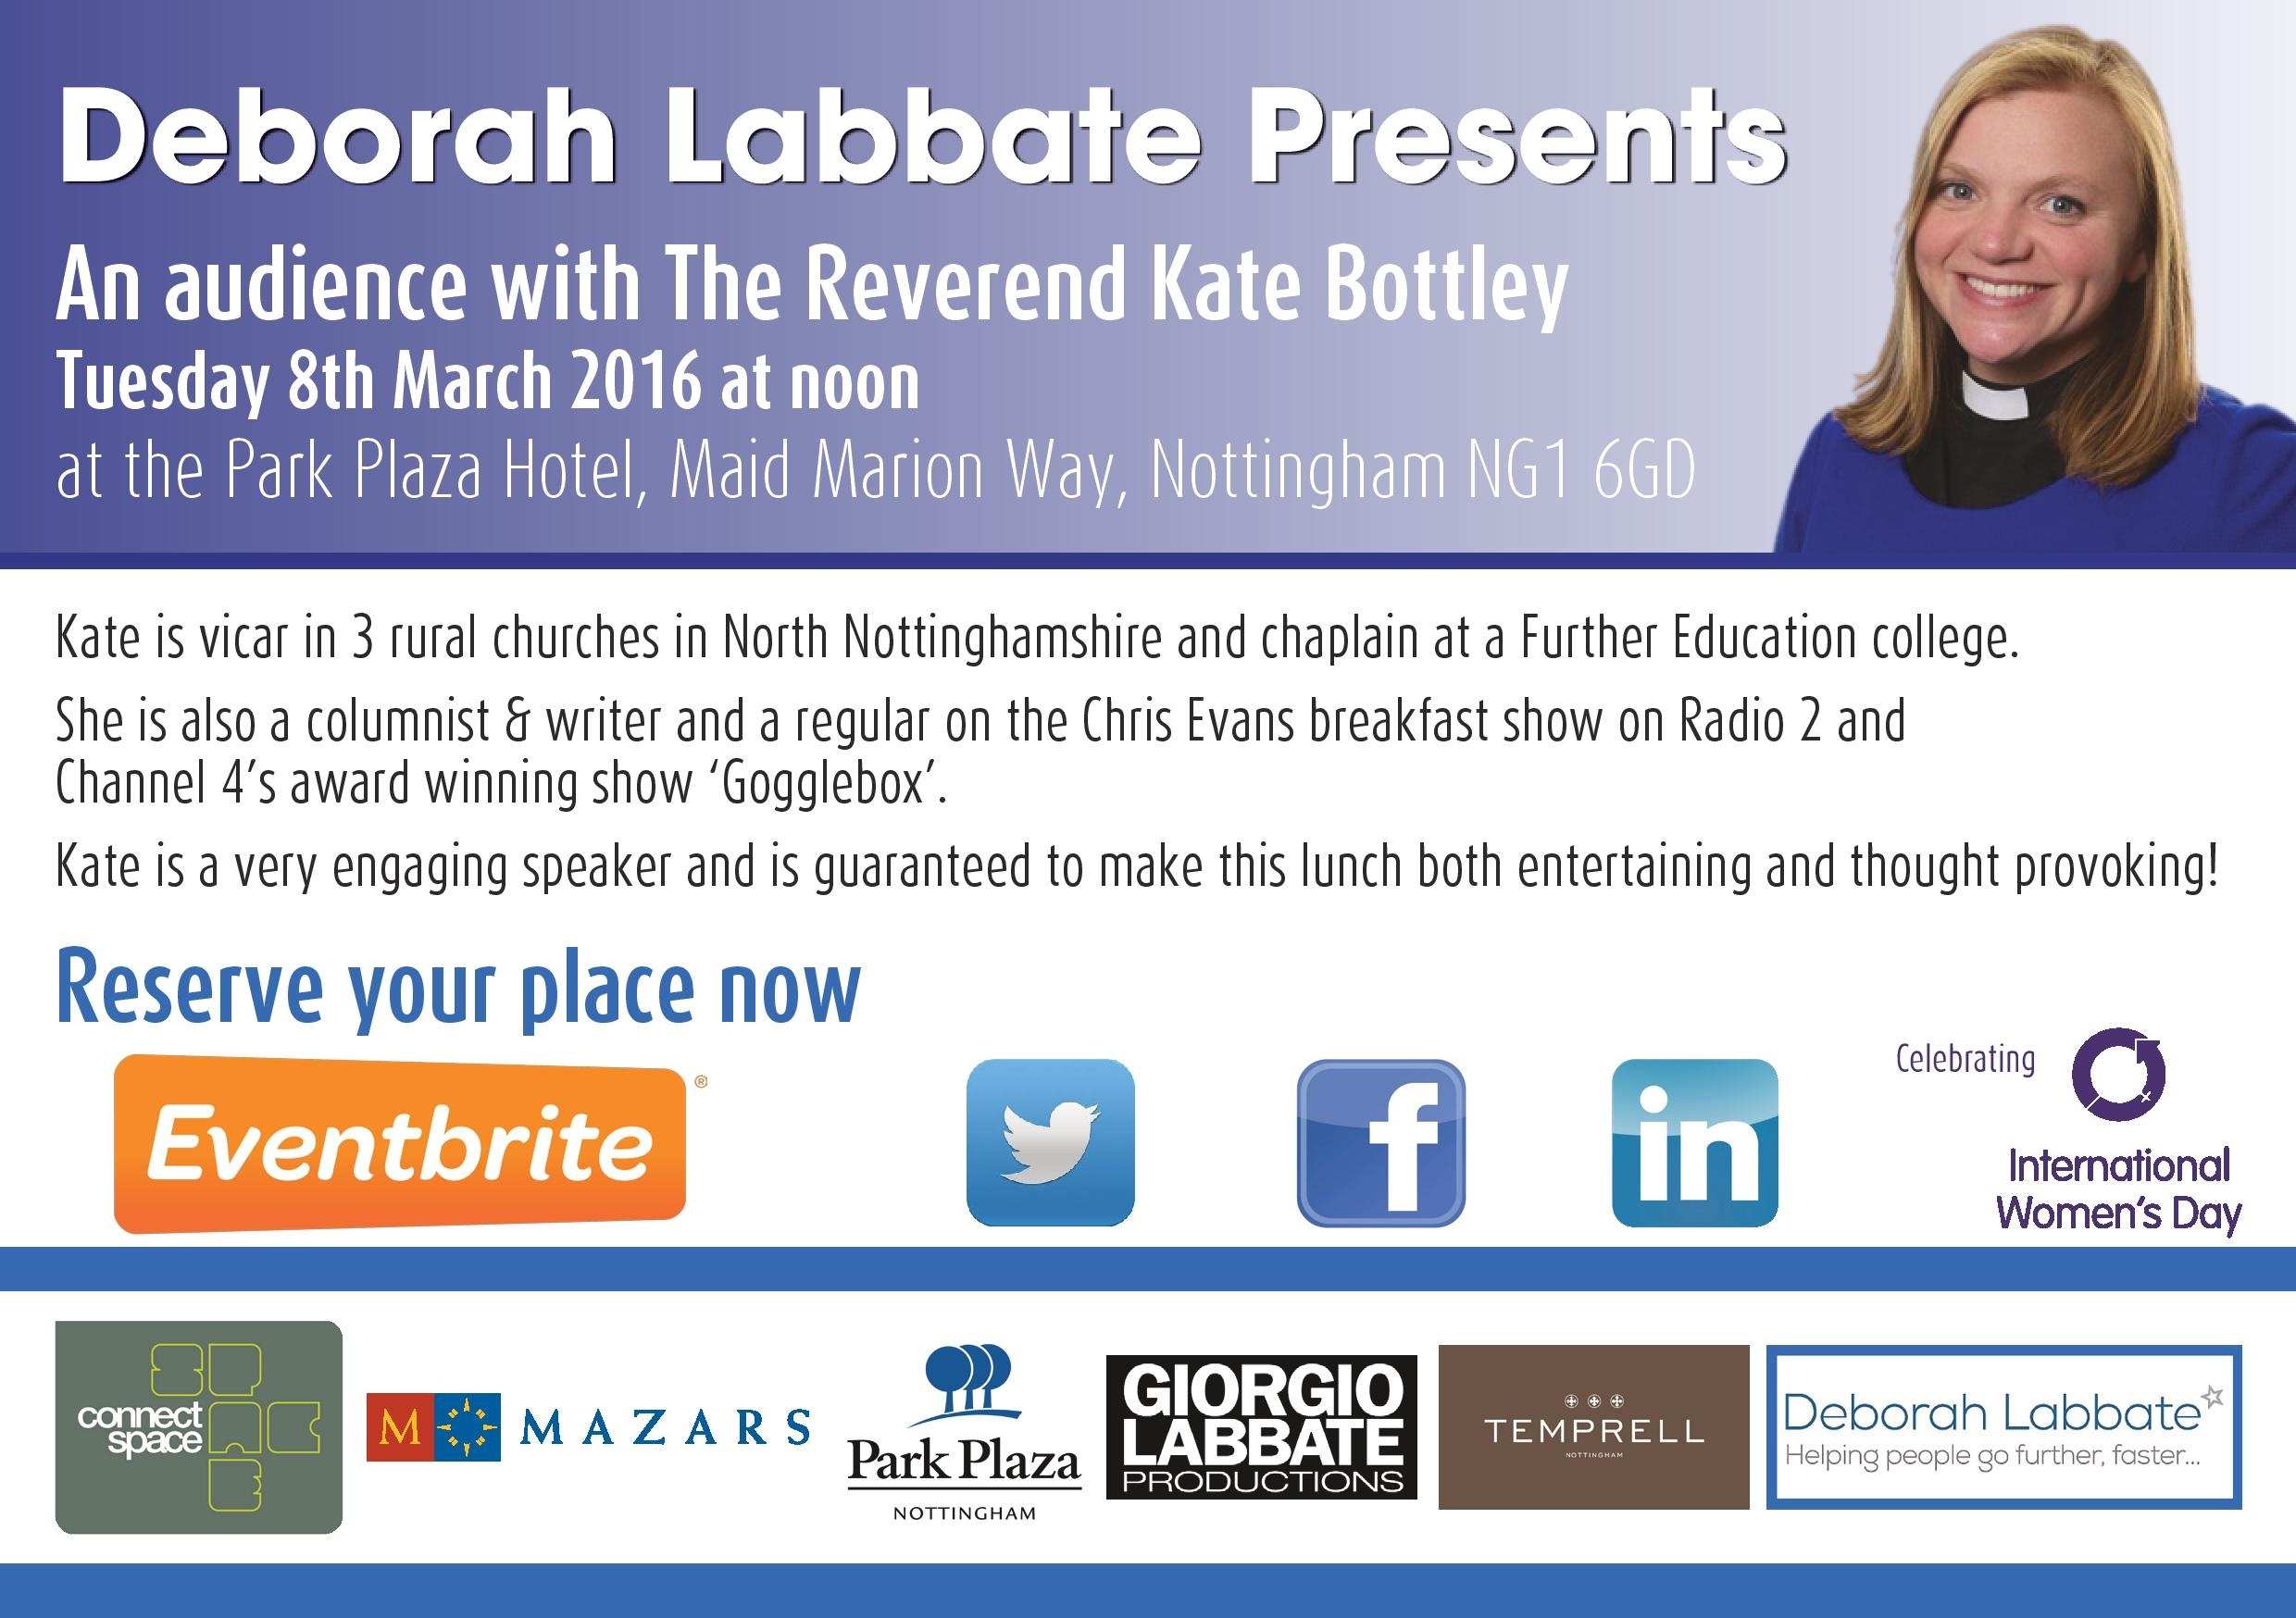 Deborah Labbate Presents An audience with ... The Reverend Kate Bottley